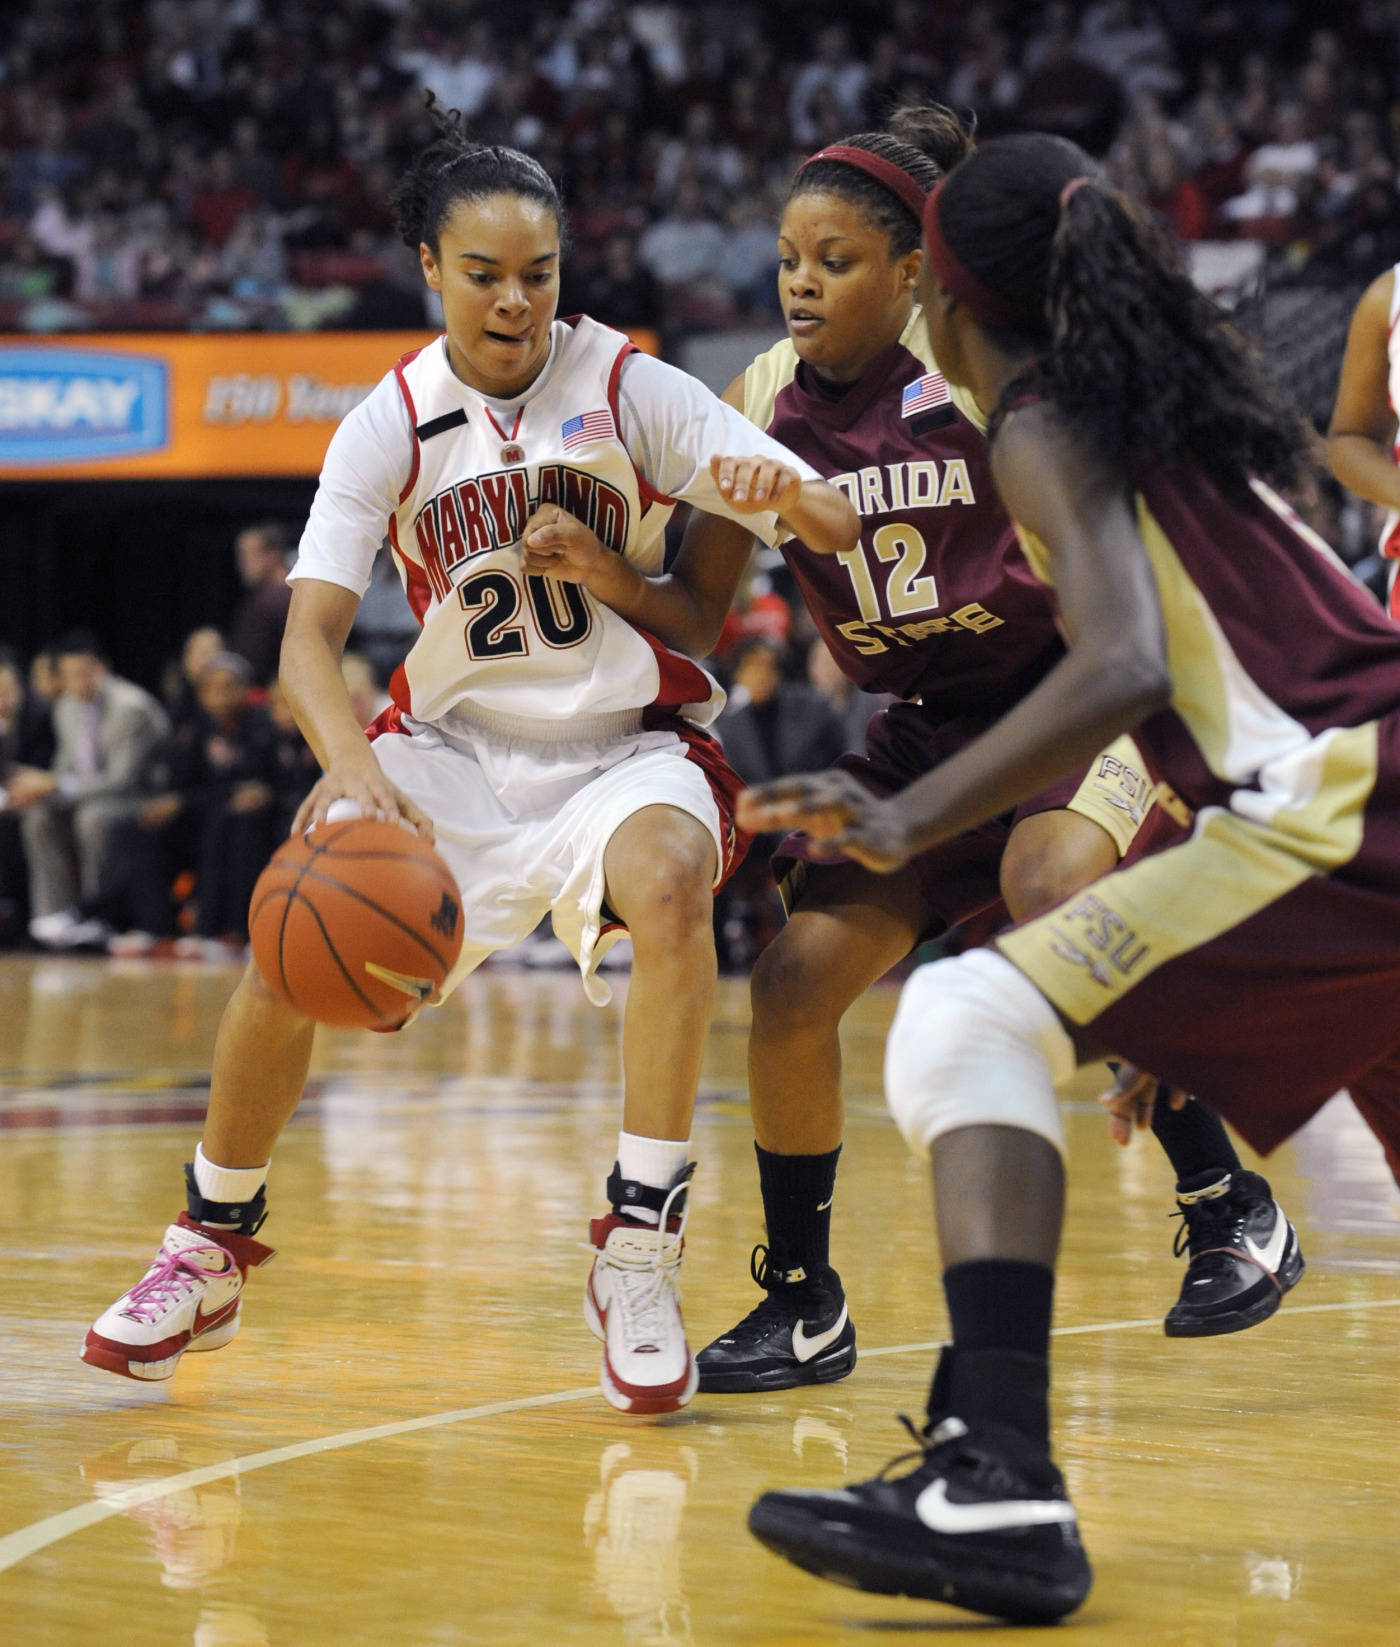 Maryland's Kristi Toliver drives the ball as Florida State's Courtney Ward (12) and Jacinta Monroe, right, defend during the first half of a college basketball game, Sunday Feb. 24, 2008 in College Park, Md. Maryland won 92-84 in overtime. (AP Photo/Gail Burton)